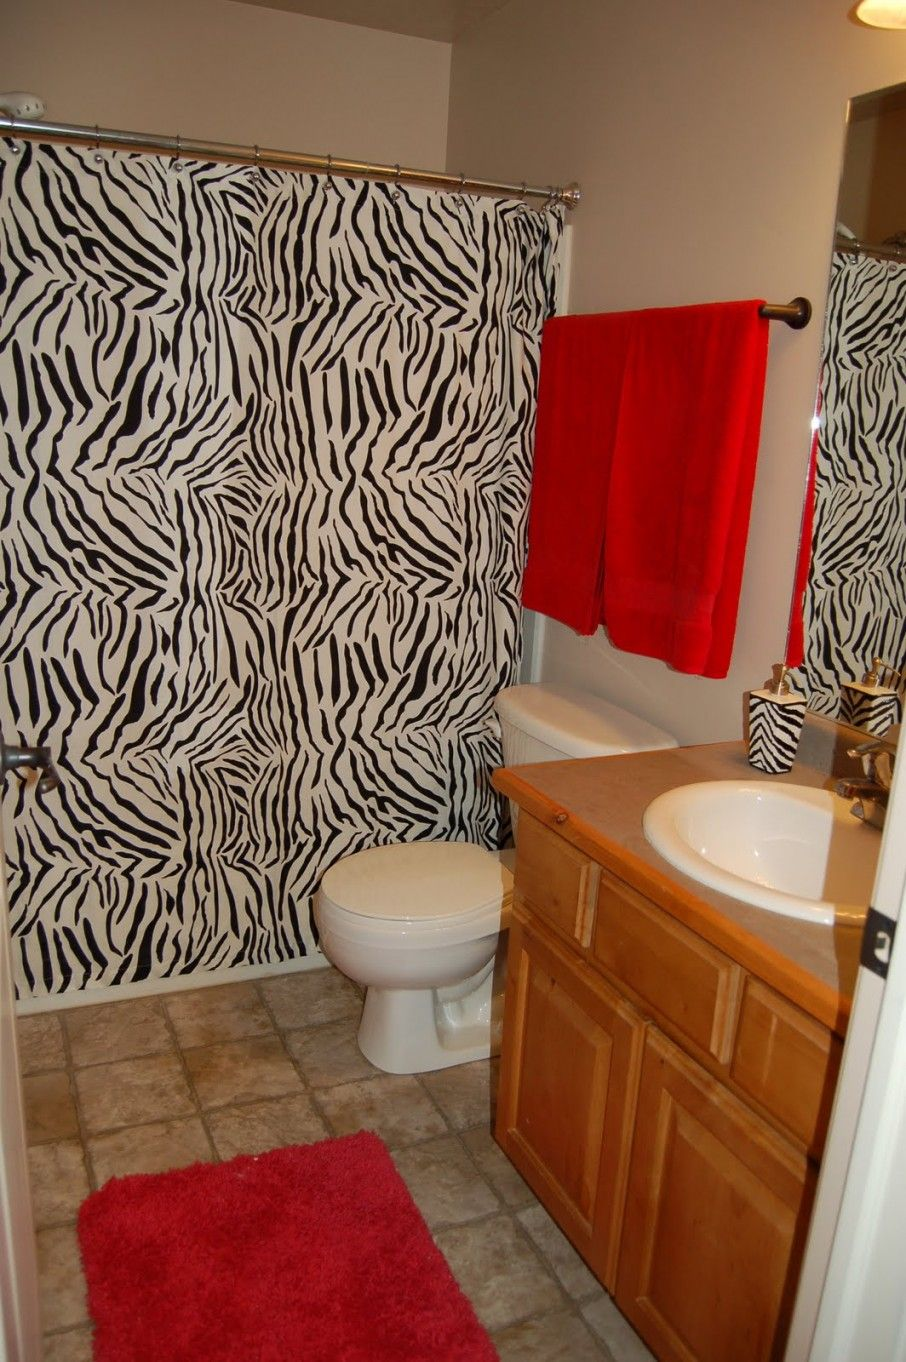 Chic Zebra Print Bathroom Ideas Unusual Red Details In The With White